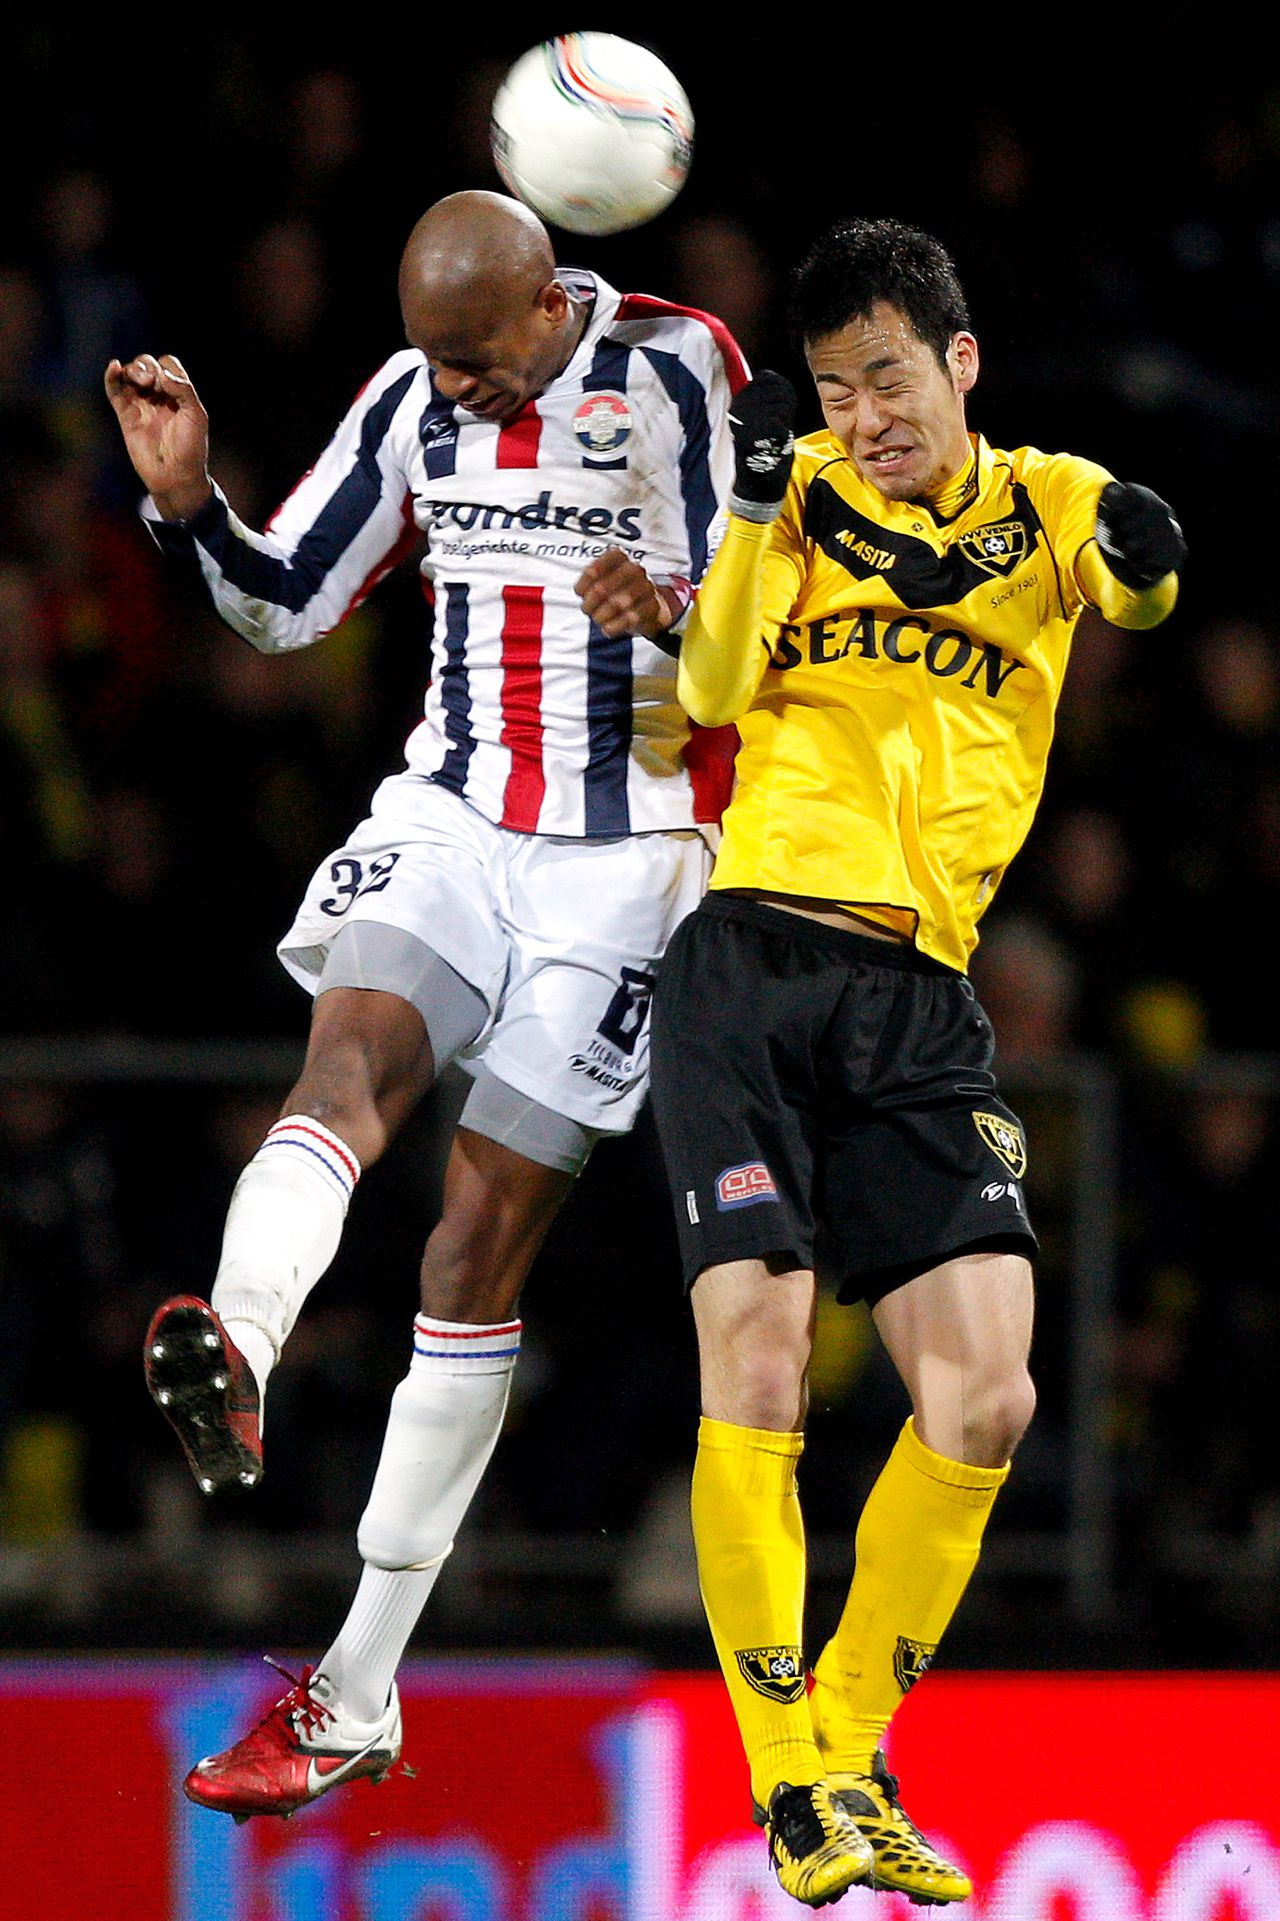 Onderwerp/Subject: VVV Venlo - Willem II - Eredivisie Reklame: Club/Team/Country: VVV Venlo - Willem II Seizoen/Season: 2010/2011 FOTO/PHOTO: VVV Venlo's Maya YOSHIDA (R) in duel with Willem II's Rangelo JANGA (L). (Photo by PICS UNITED) Trefwoorden/Keywords: #04 #17 $38 ±1279289473015 Photo- & Copyrights © PICS UNITED P.O. Box 7164 - 5605 BE EINDHOVEN (THE NETHERLANDS) Phone +31 (0)40 296 28 00 Fax +31 (0) 40 248 47 43 http://www.pics-united.com e-mail : sales@pics-united.com (If you would like to raise any issues regarding any aspects of products / service of PICS UNITED) or e-mail : sales@pics-united.com ATTENTIE: Publicatie ook bij aanbieding door derden is slechts toegestaan na verkregen toestemming van Pics United. VOLLEDIGE NAAMSVERMELDING IS VERPLICHT! (© PICS UNITED/Naam Fotograaf, zie veld 4 van de bestandsinfo 'credits') ATTENTION: © Pics United. Reproduction/publication of this photo by any parties is only permitted after authorisation is sought and obtained from PICS UNITED- THE NETHERLANDS